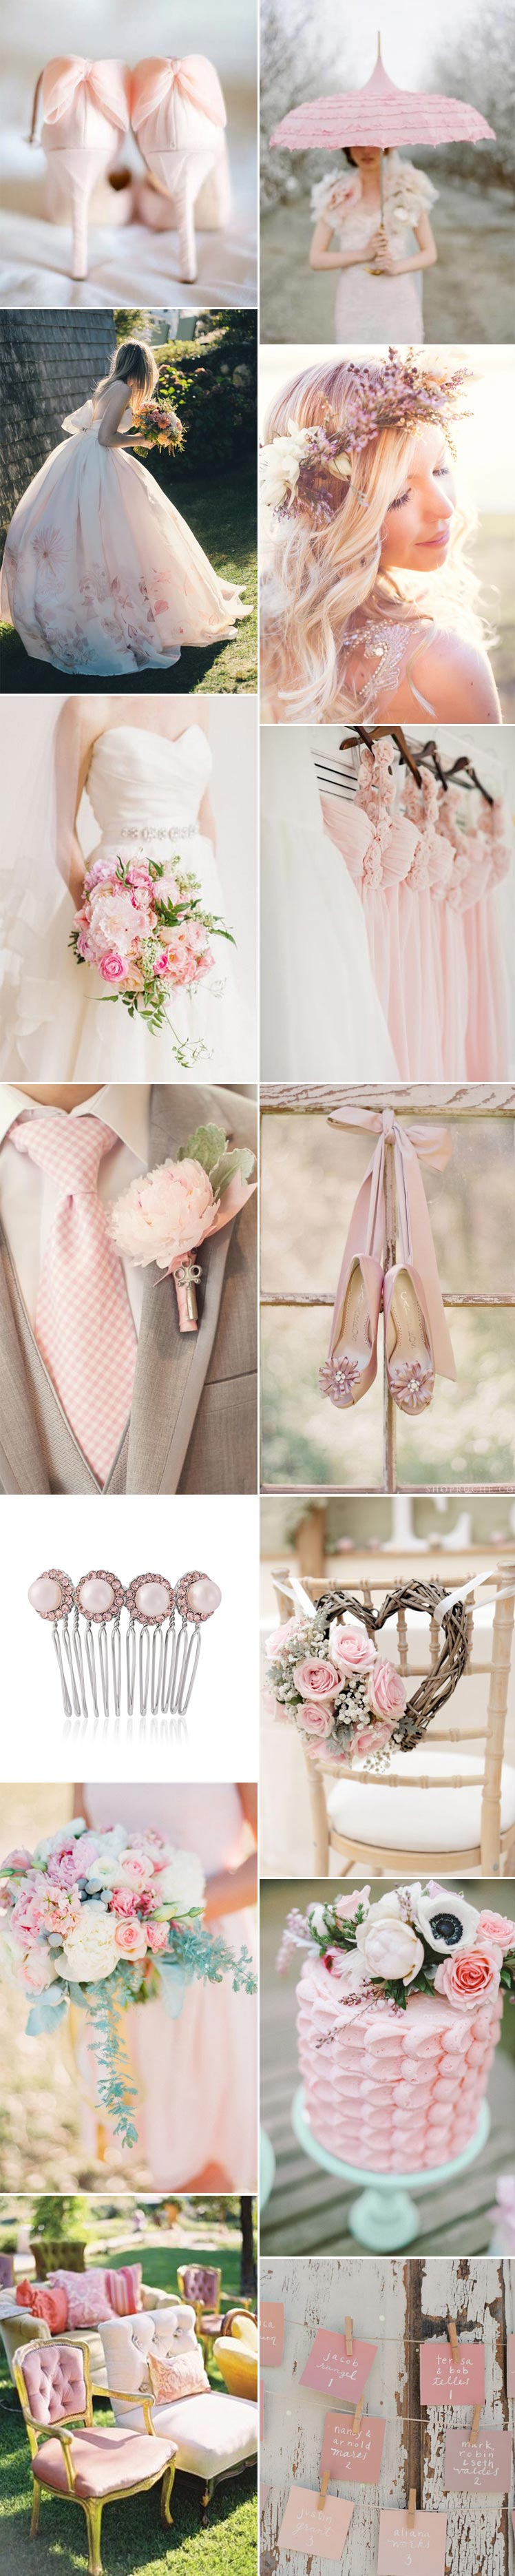 Perfect pink inspiration for your wedding colour scheme